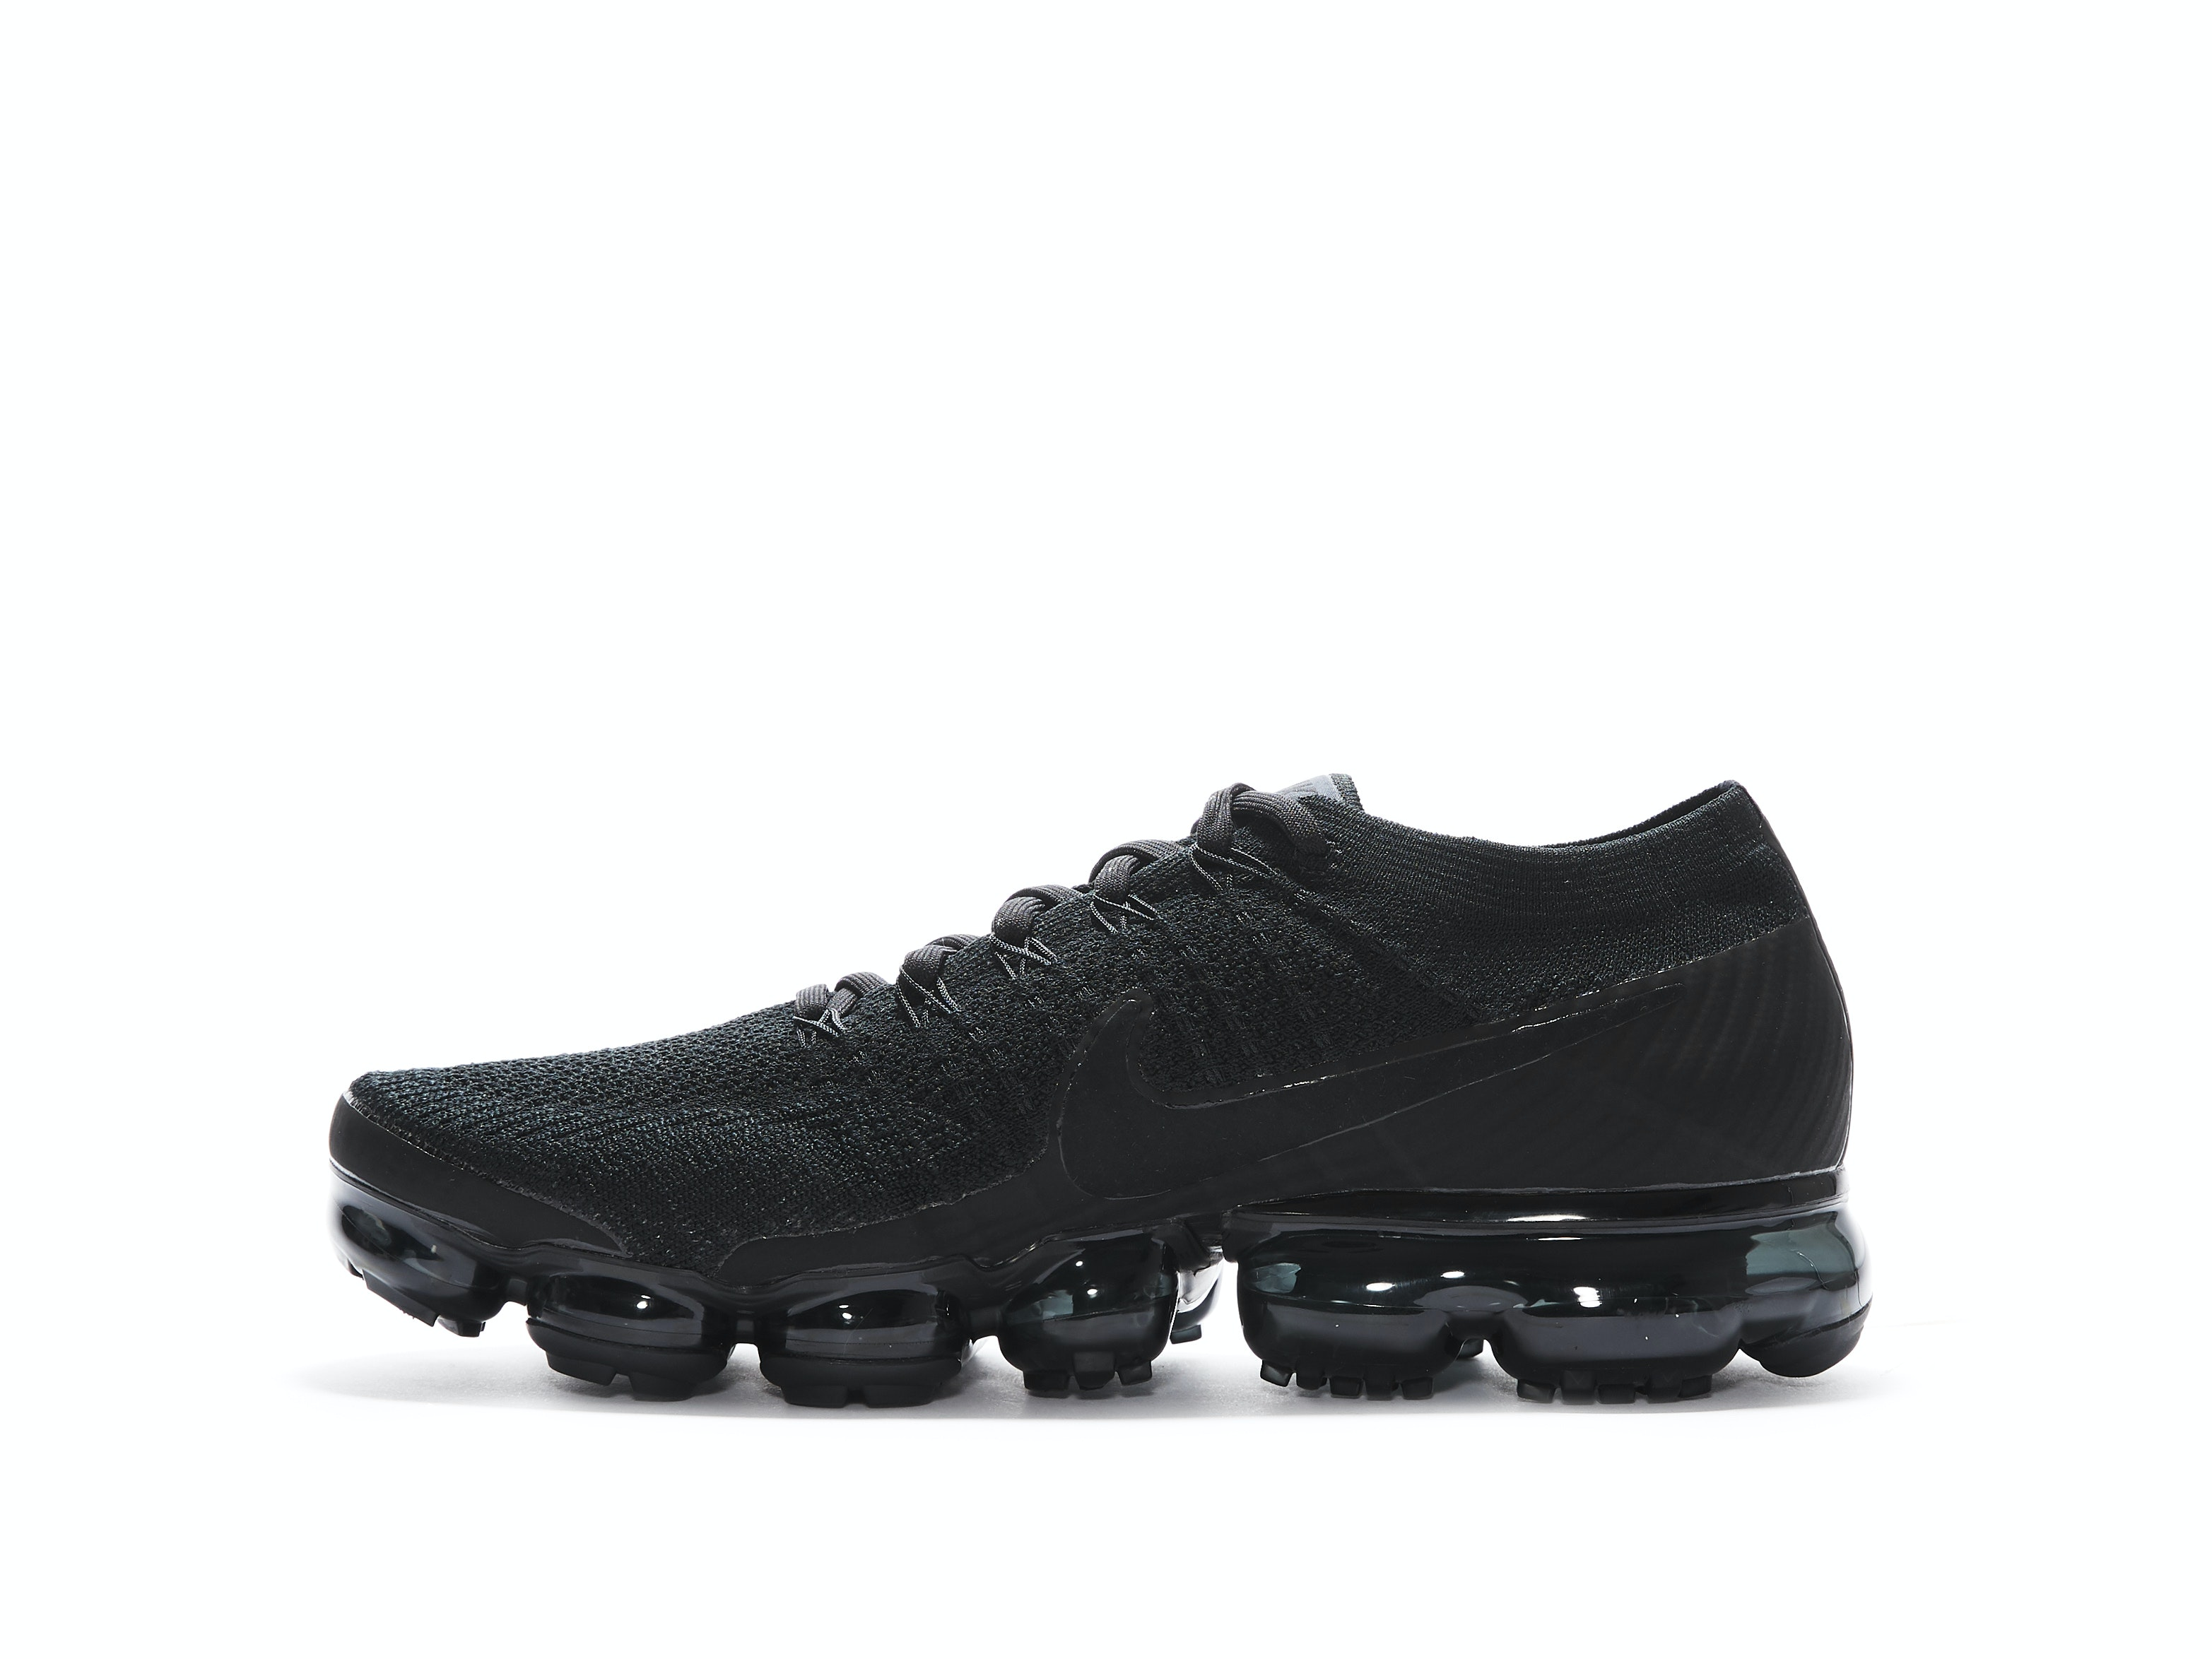 21d94ae0102 Air VaporMax Triple Black 2.0. 100% AuthenticSold out! Nike   849558-011